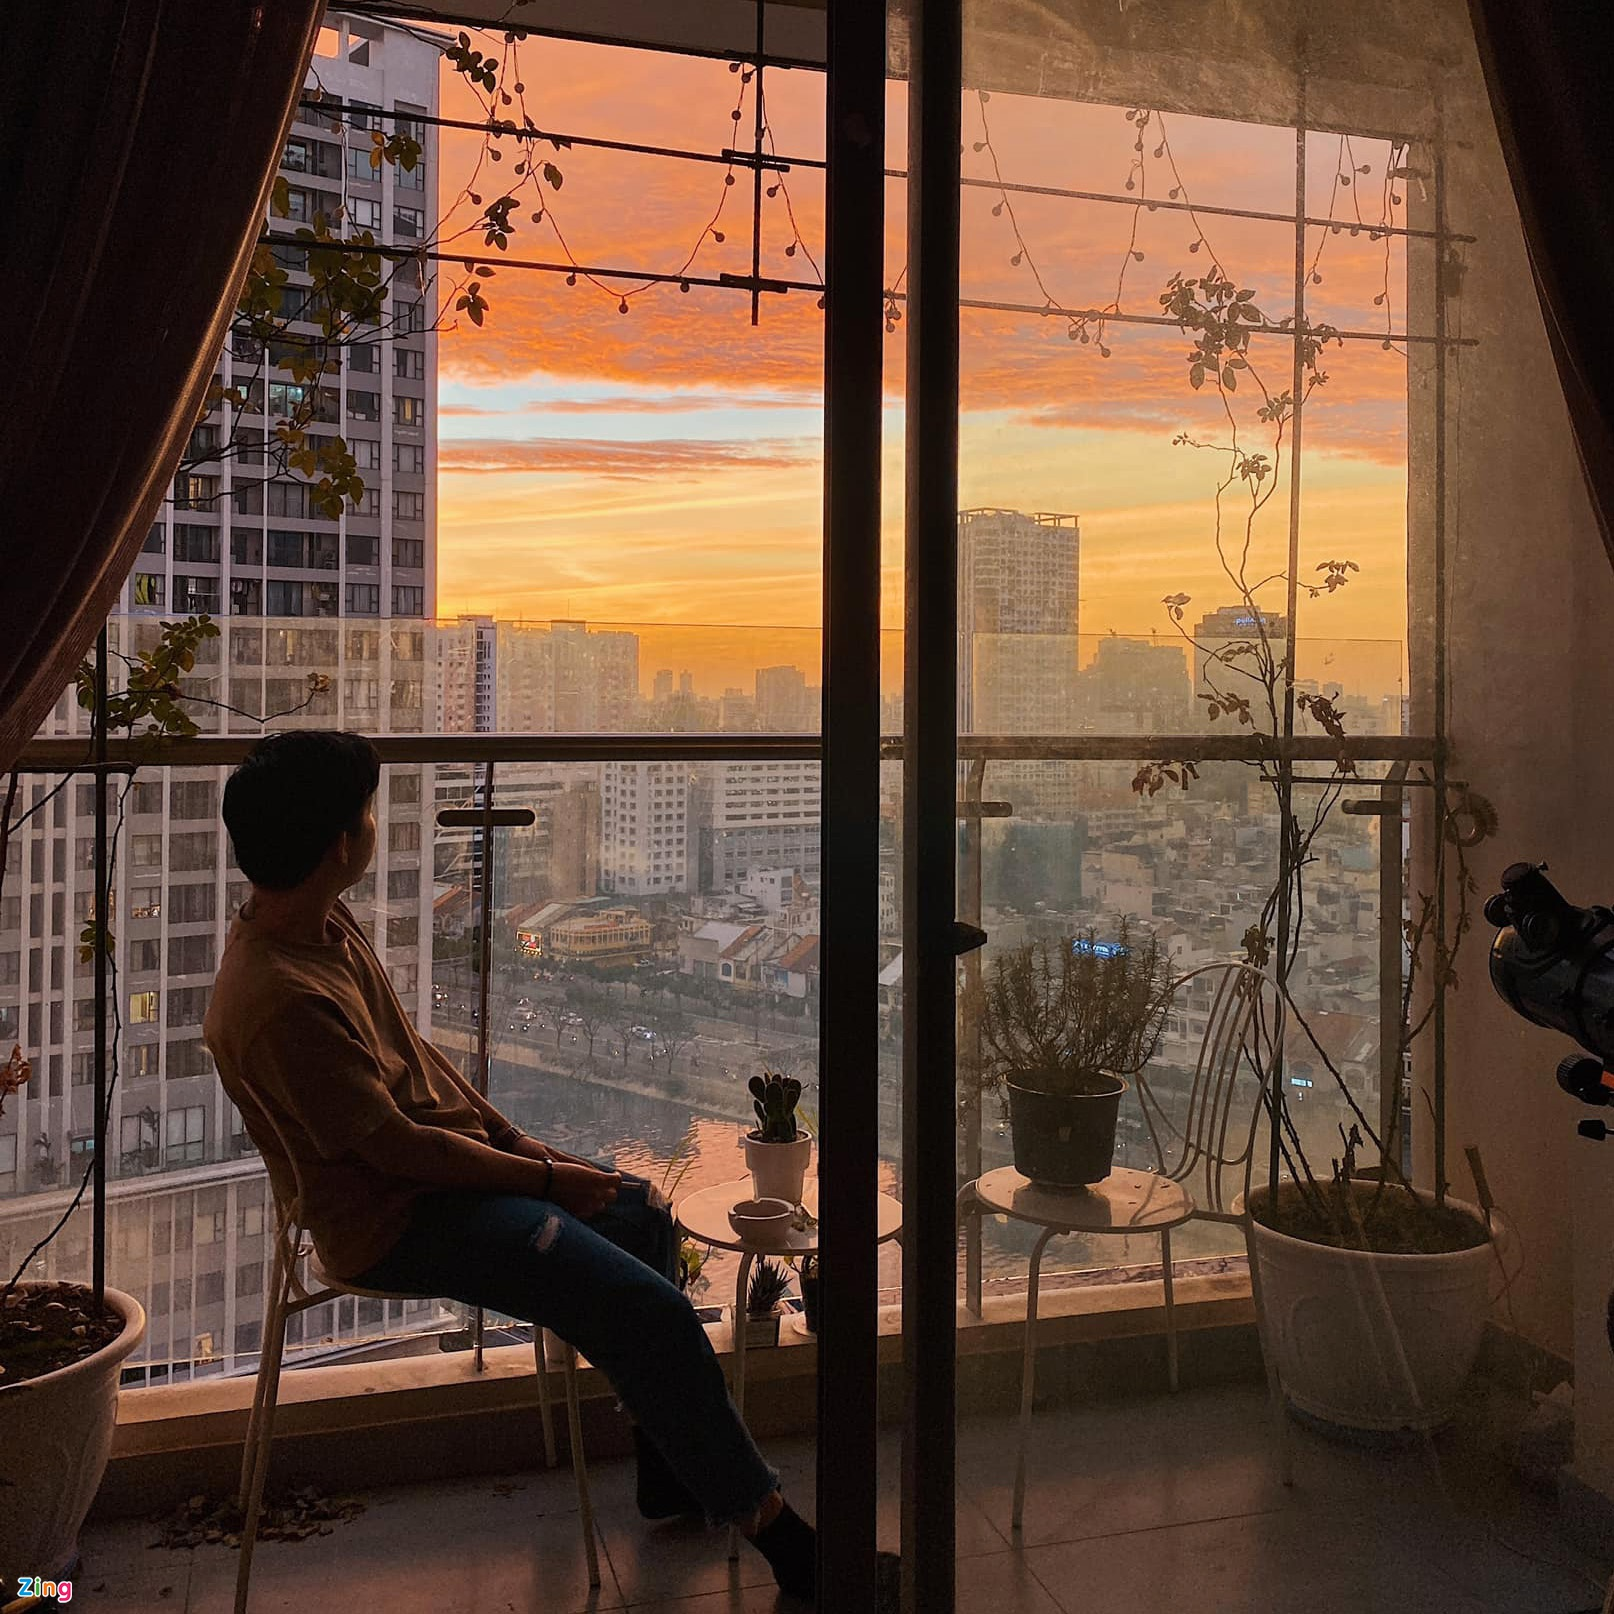 The sunset scene from Viet Anh's apartment. Photo: NVCC